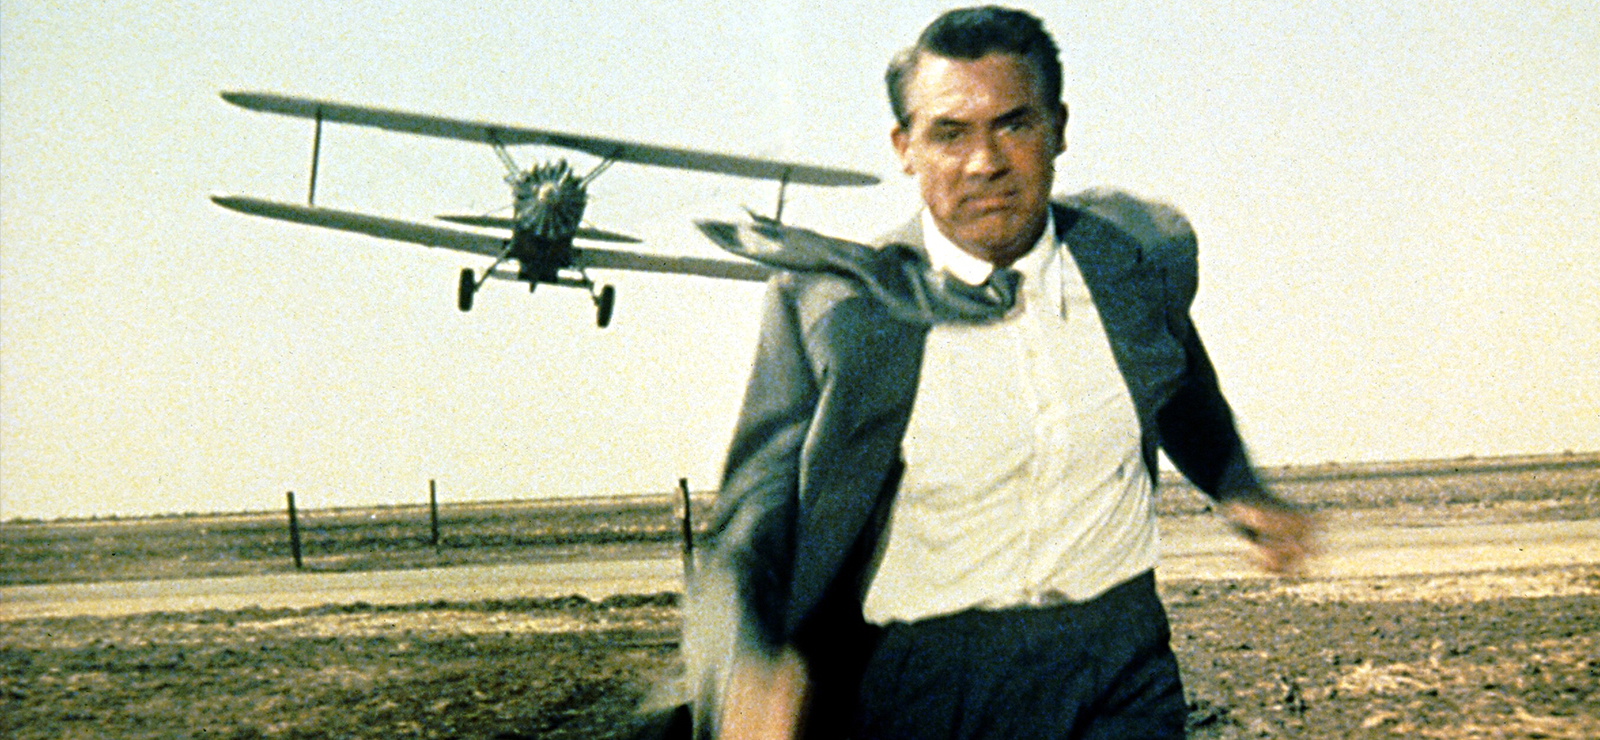 [Outdoor Film ScreeningAlfred Hitchcock's North by Northwest] Cary Grant in North by Northwest (1959); MGM/Photofest